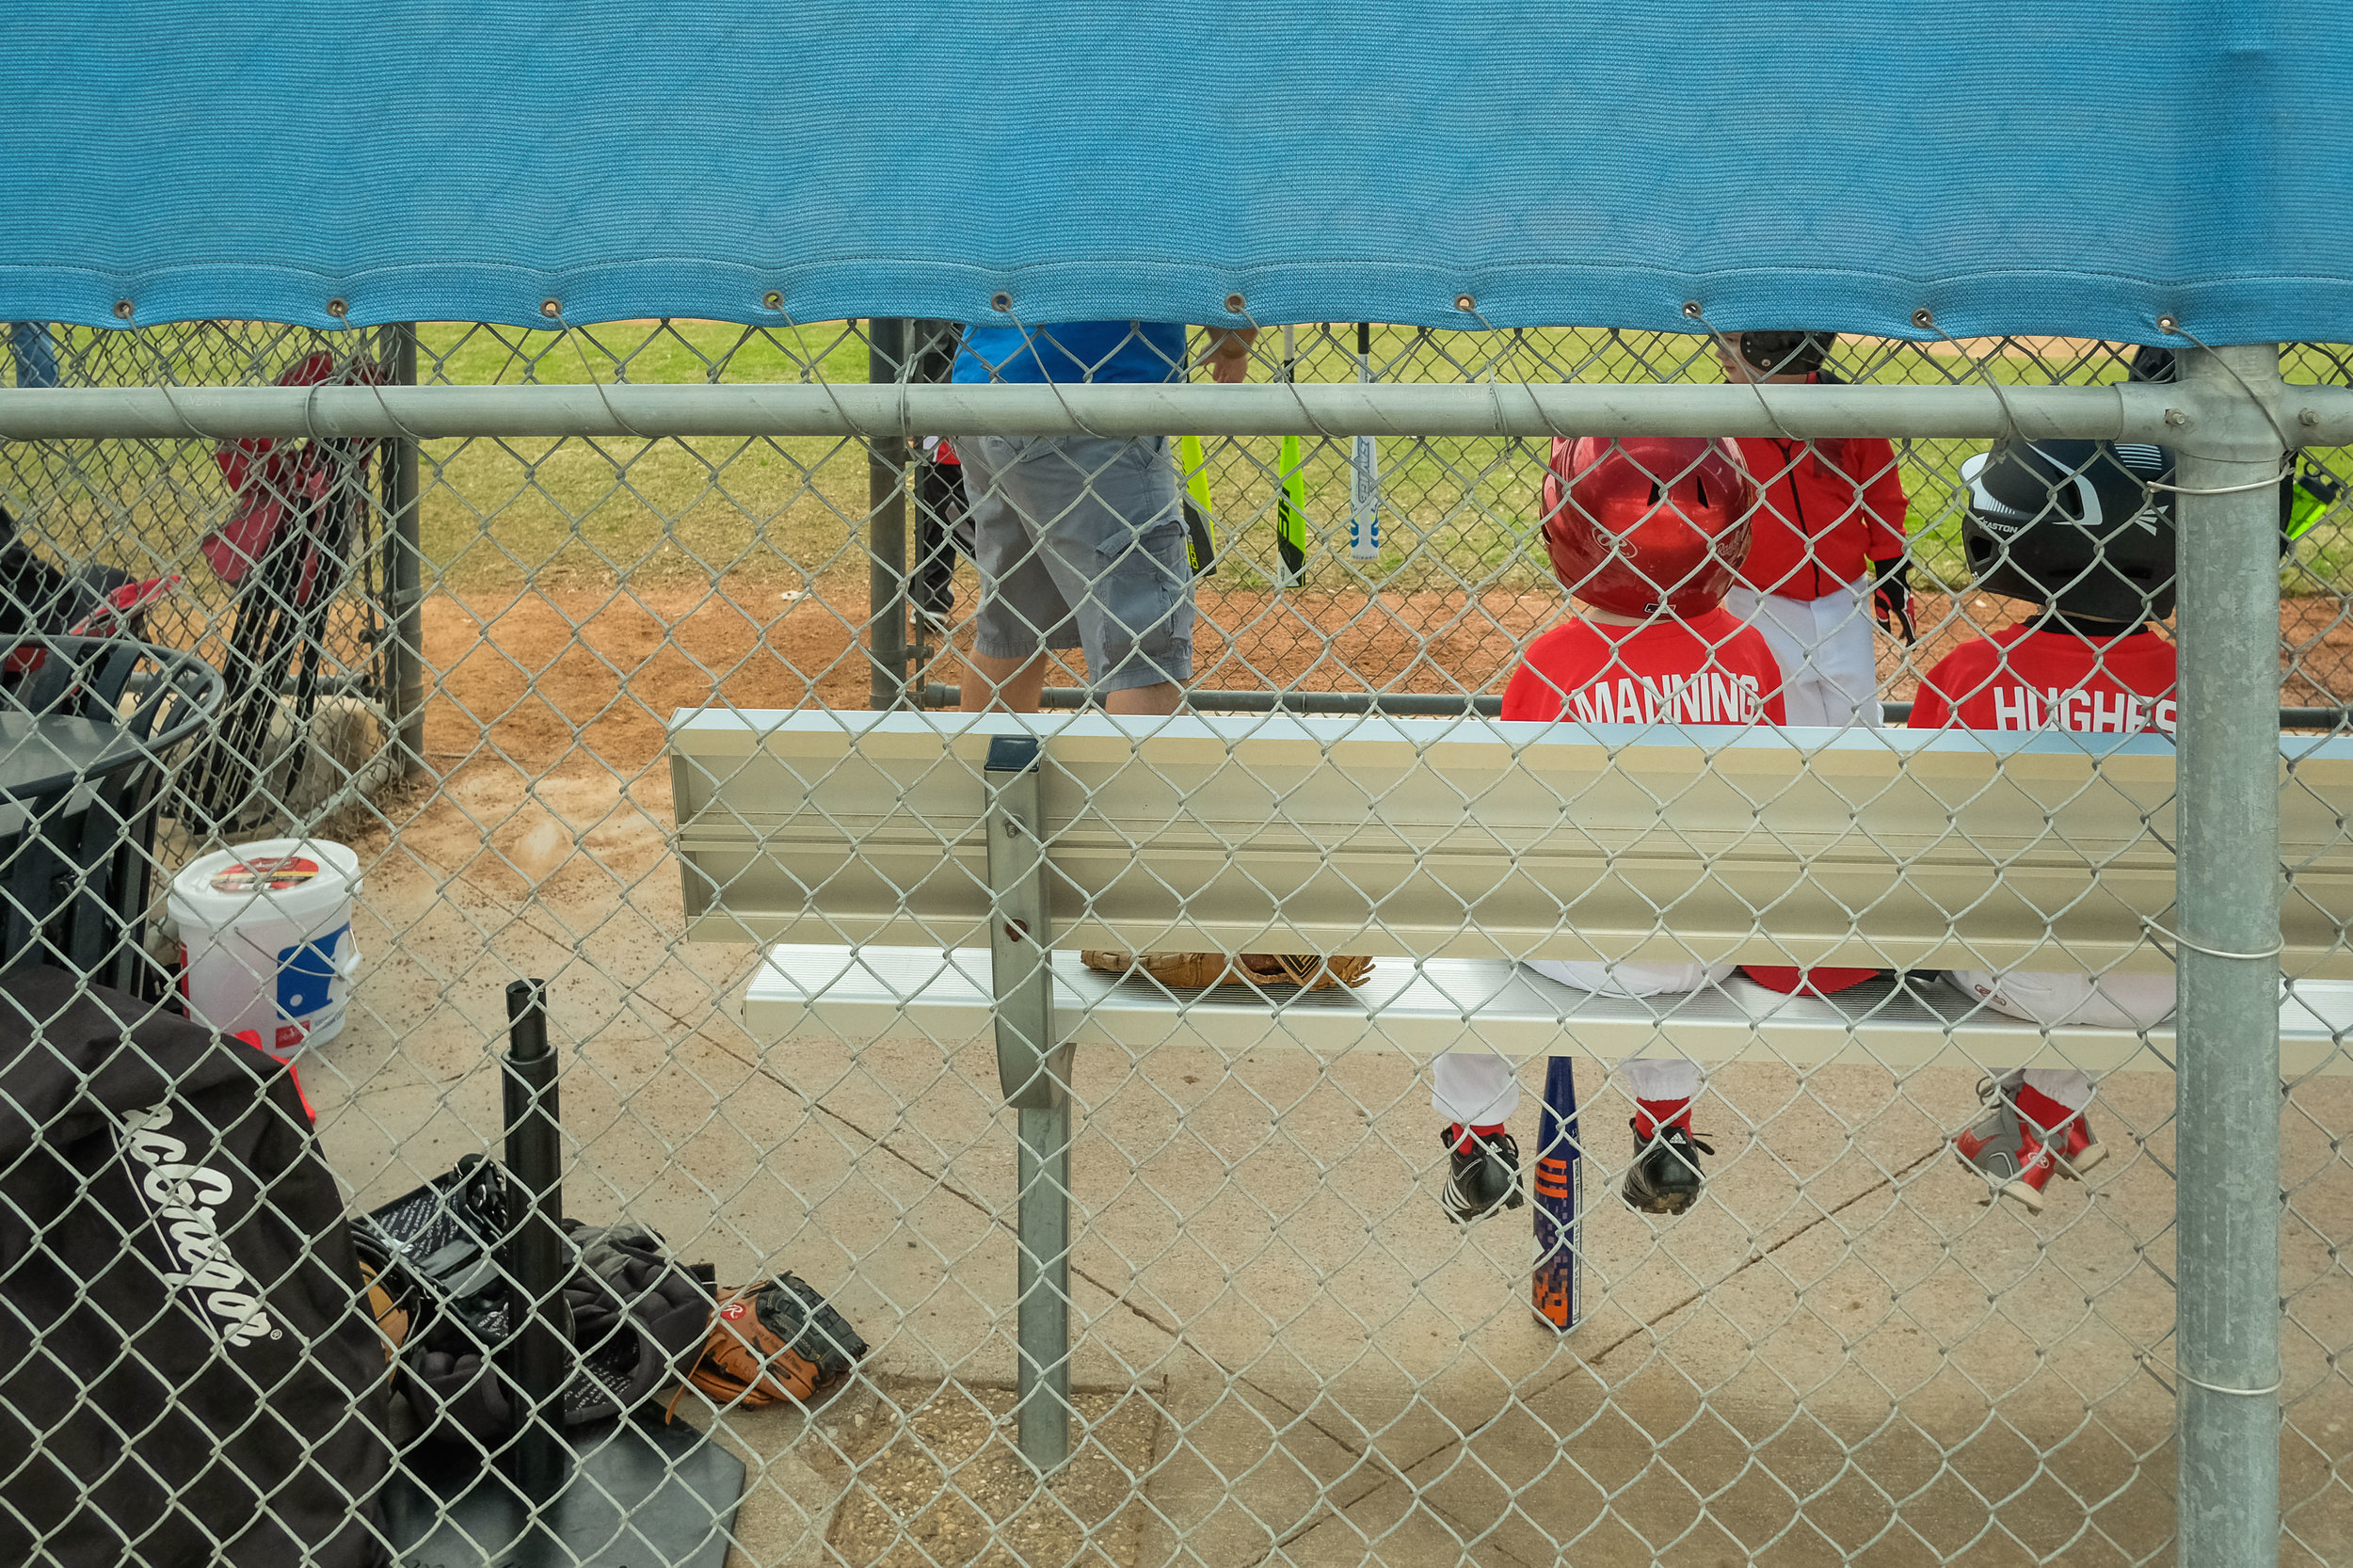 Watching the boys climb onto the dugout bench is really funny.